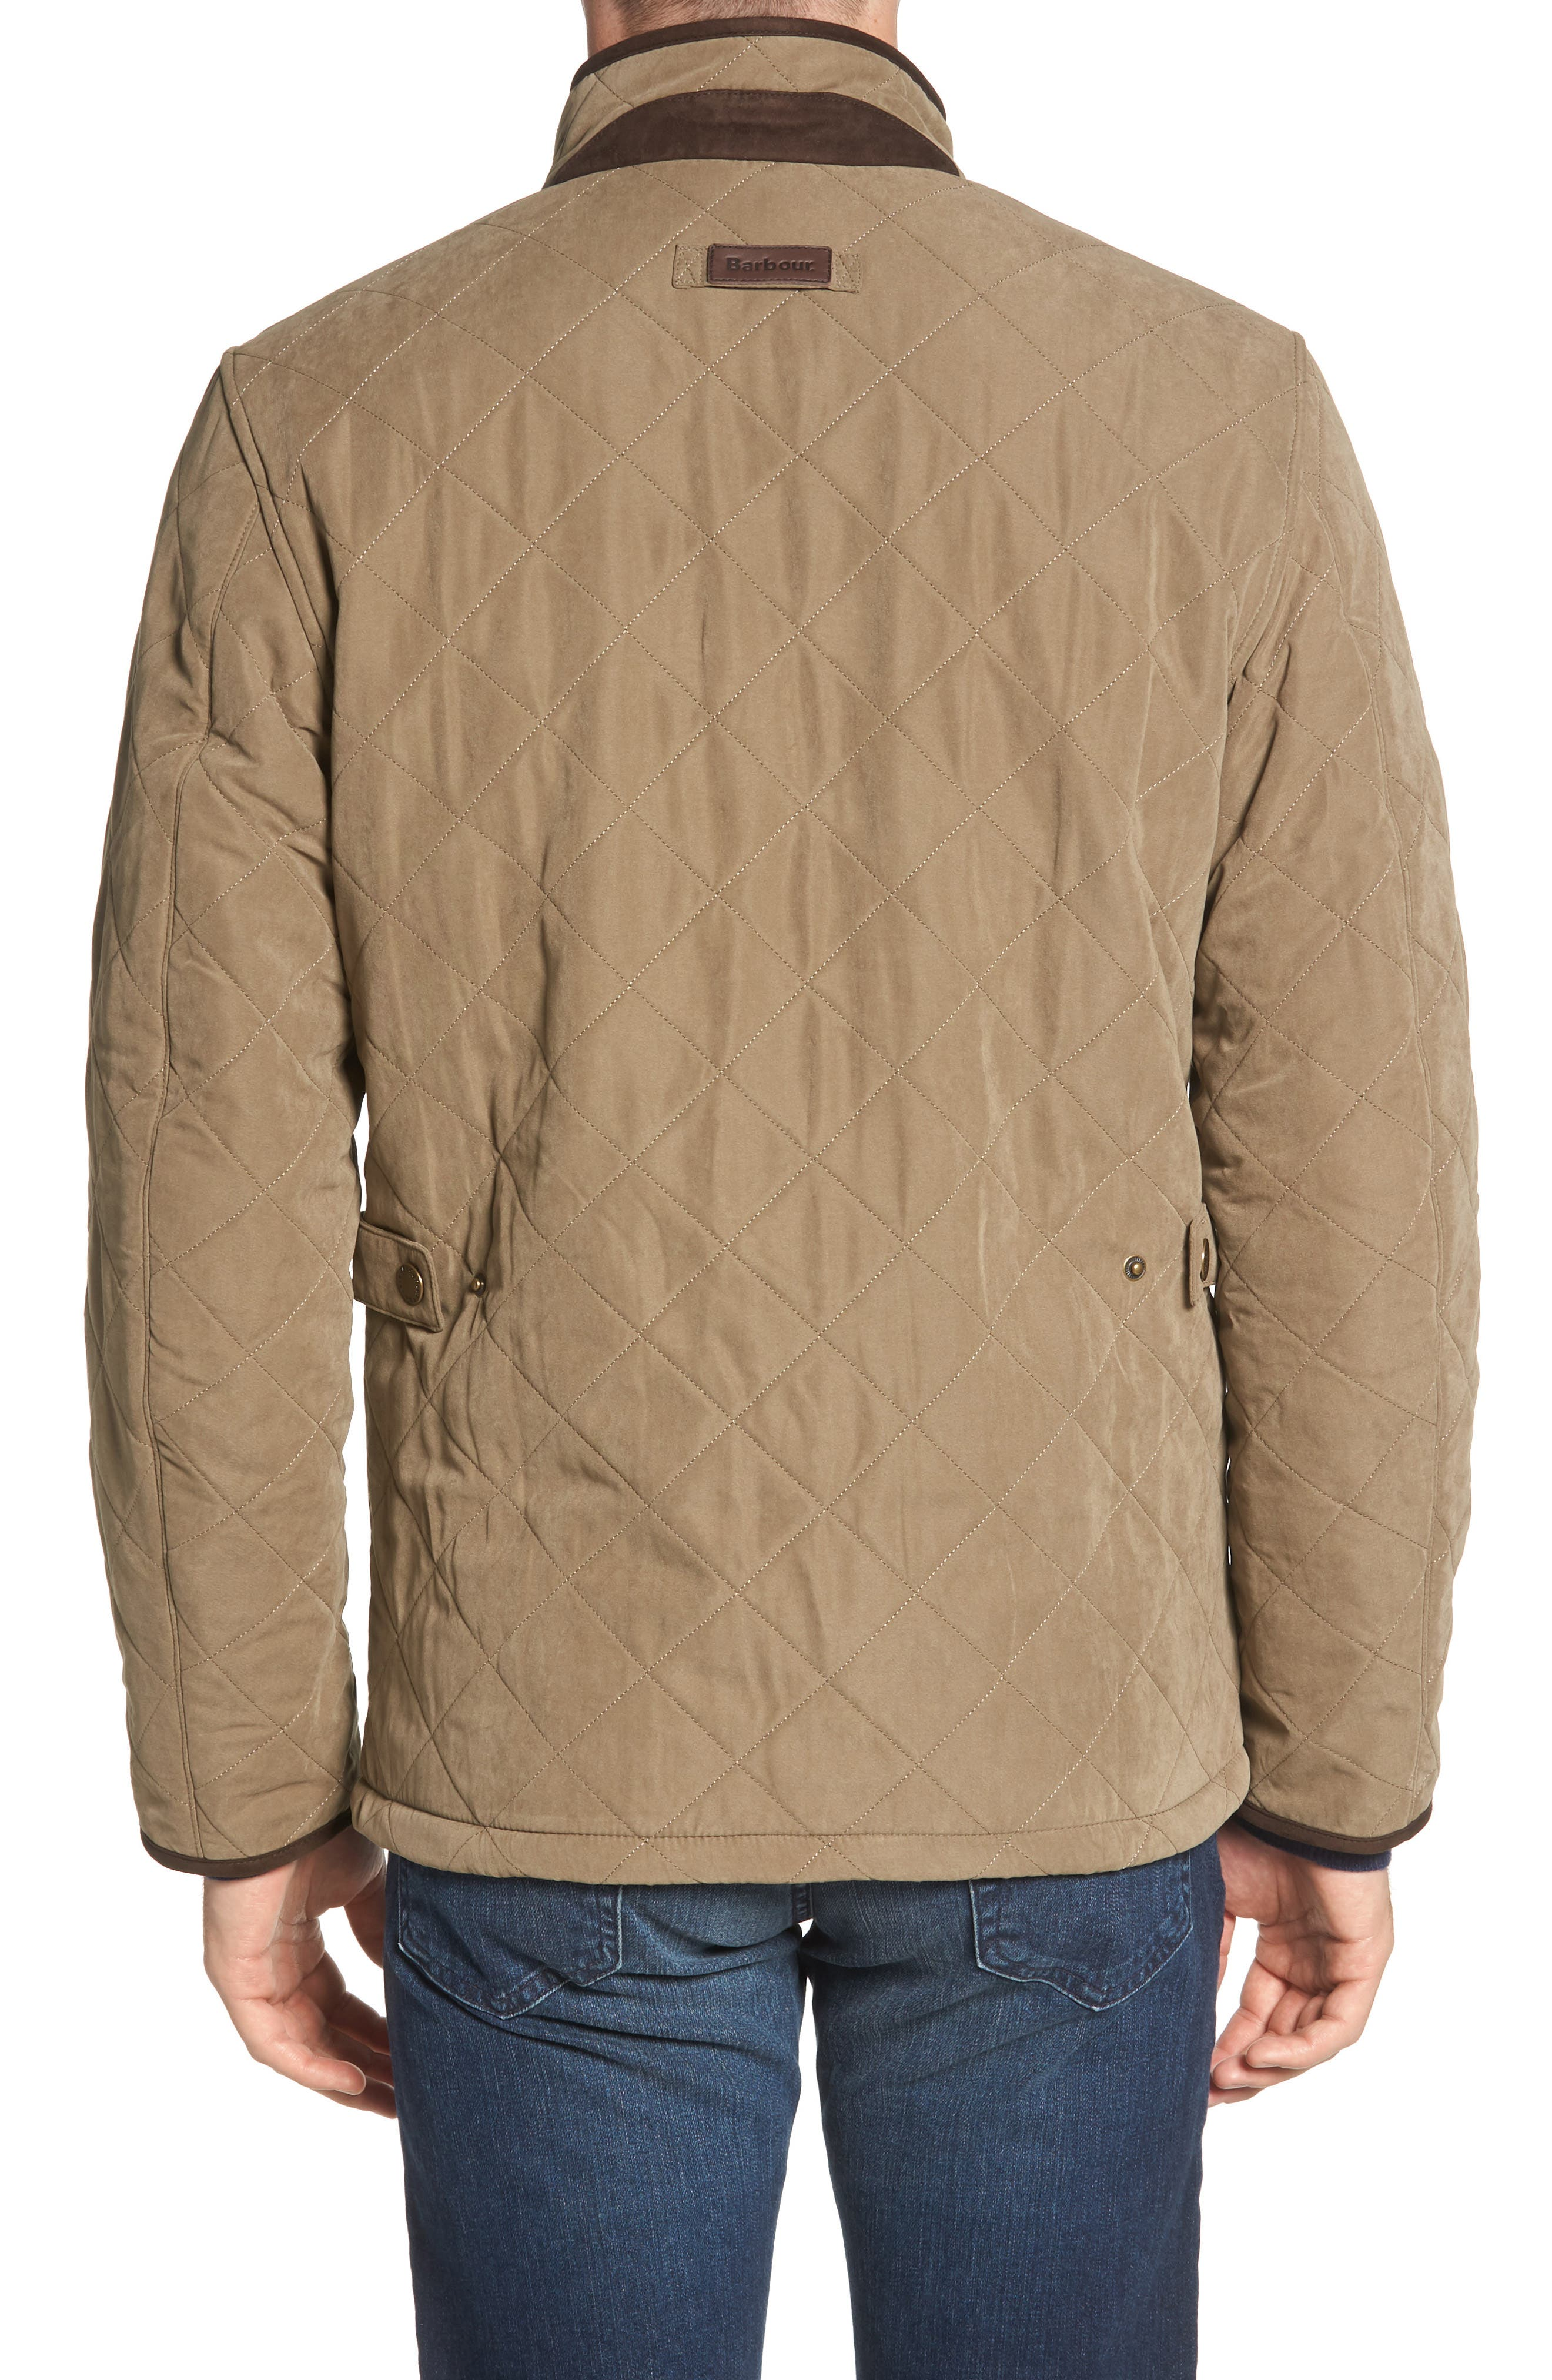 Bowden Quilted Jacket,                             Alternate thumbnail 2, color,                             LIGHT OLIVE